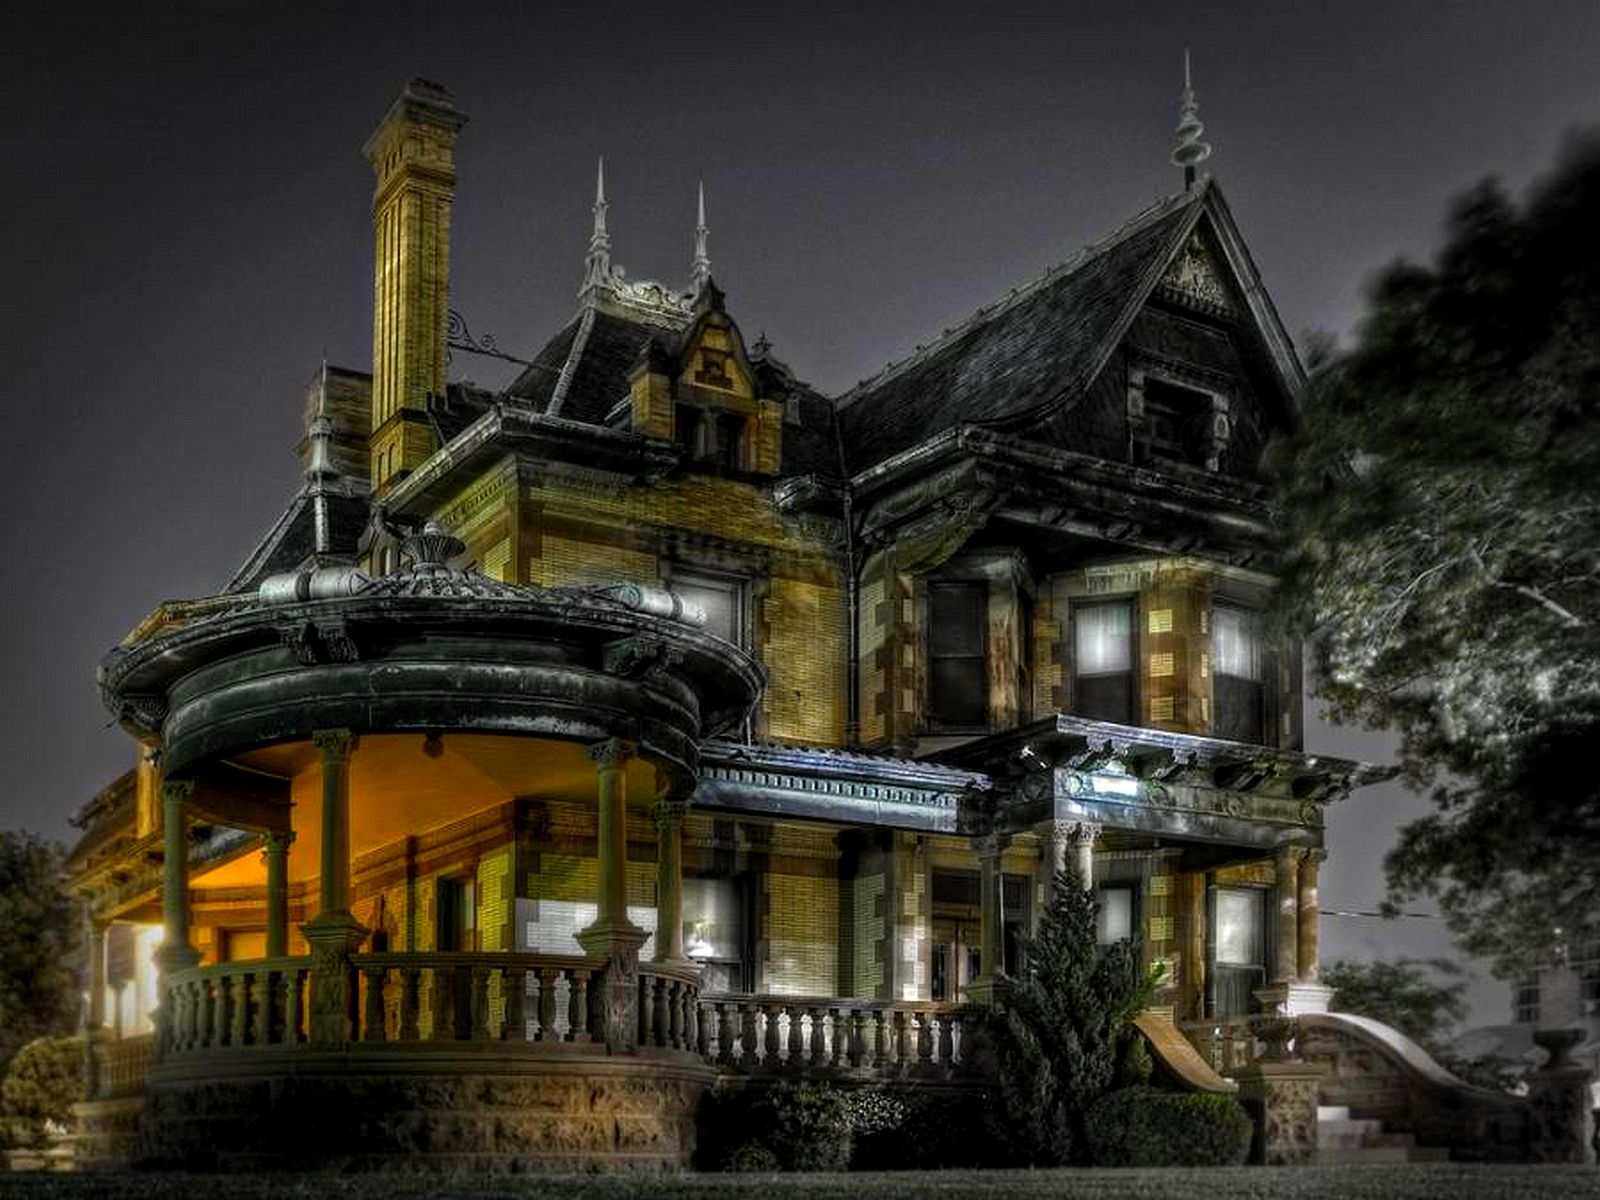 Spirits, Eerie, House, Lights, Night, Scary, Spooky, Victorian